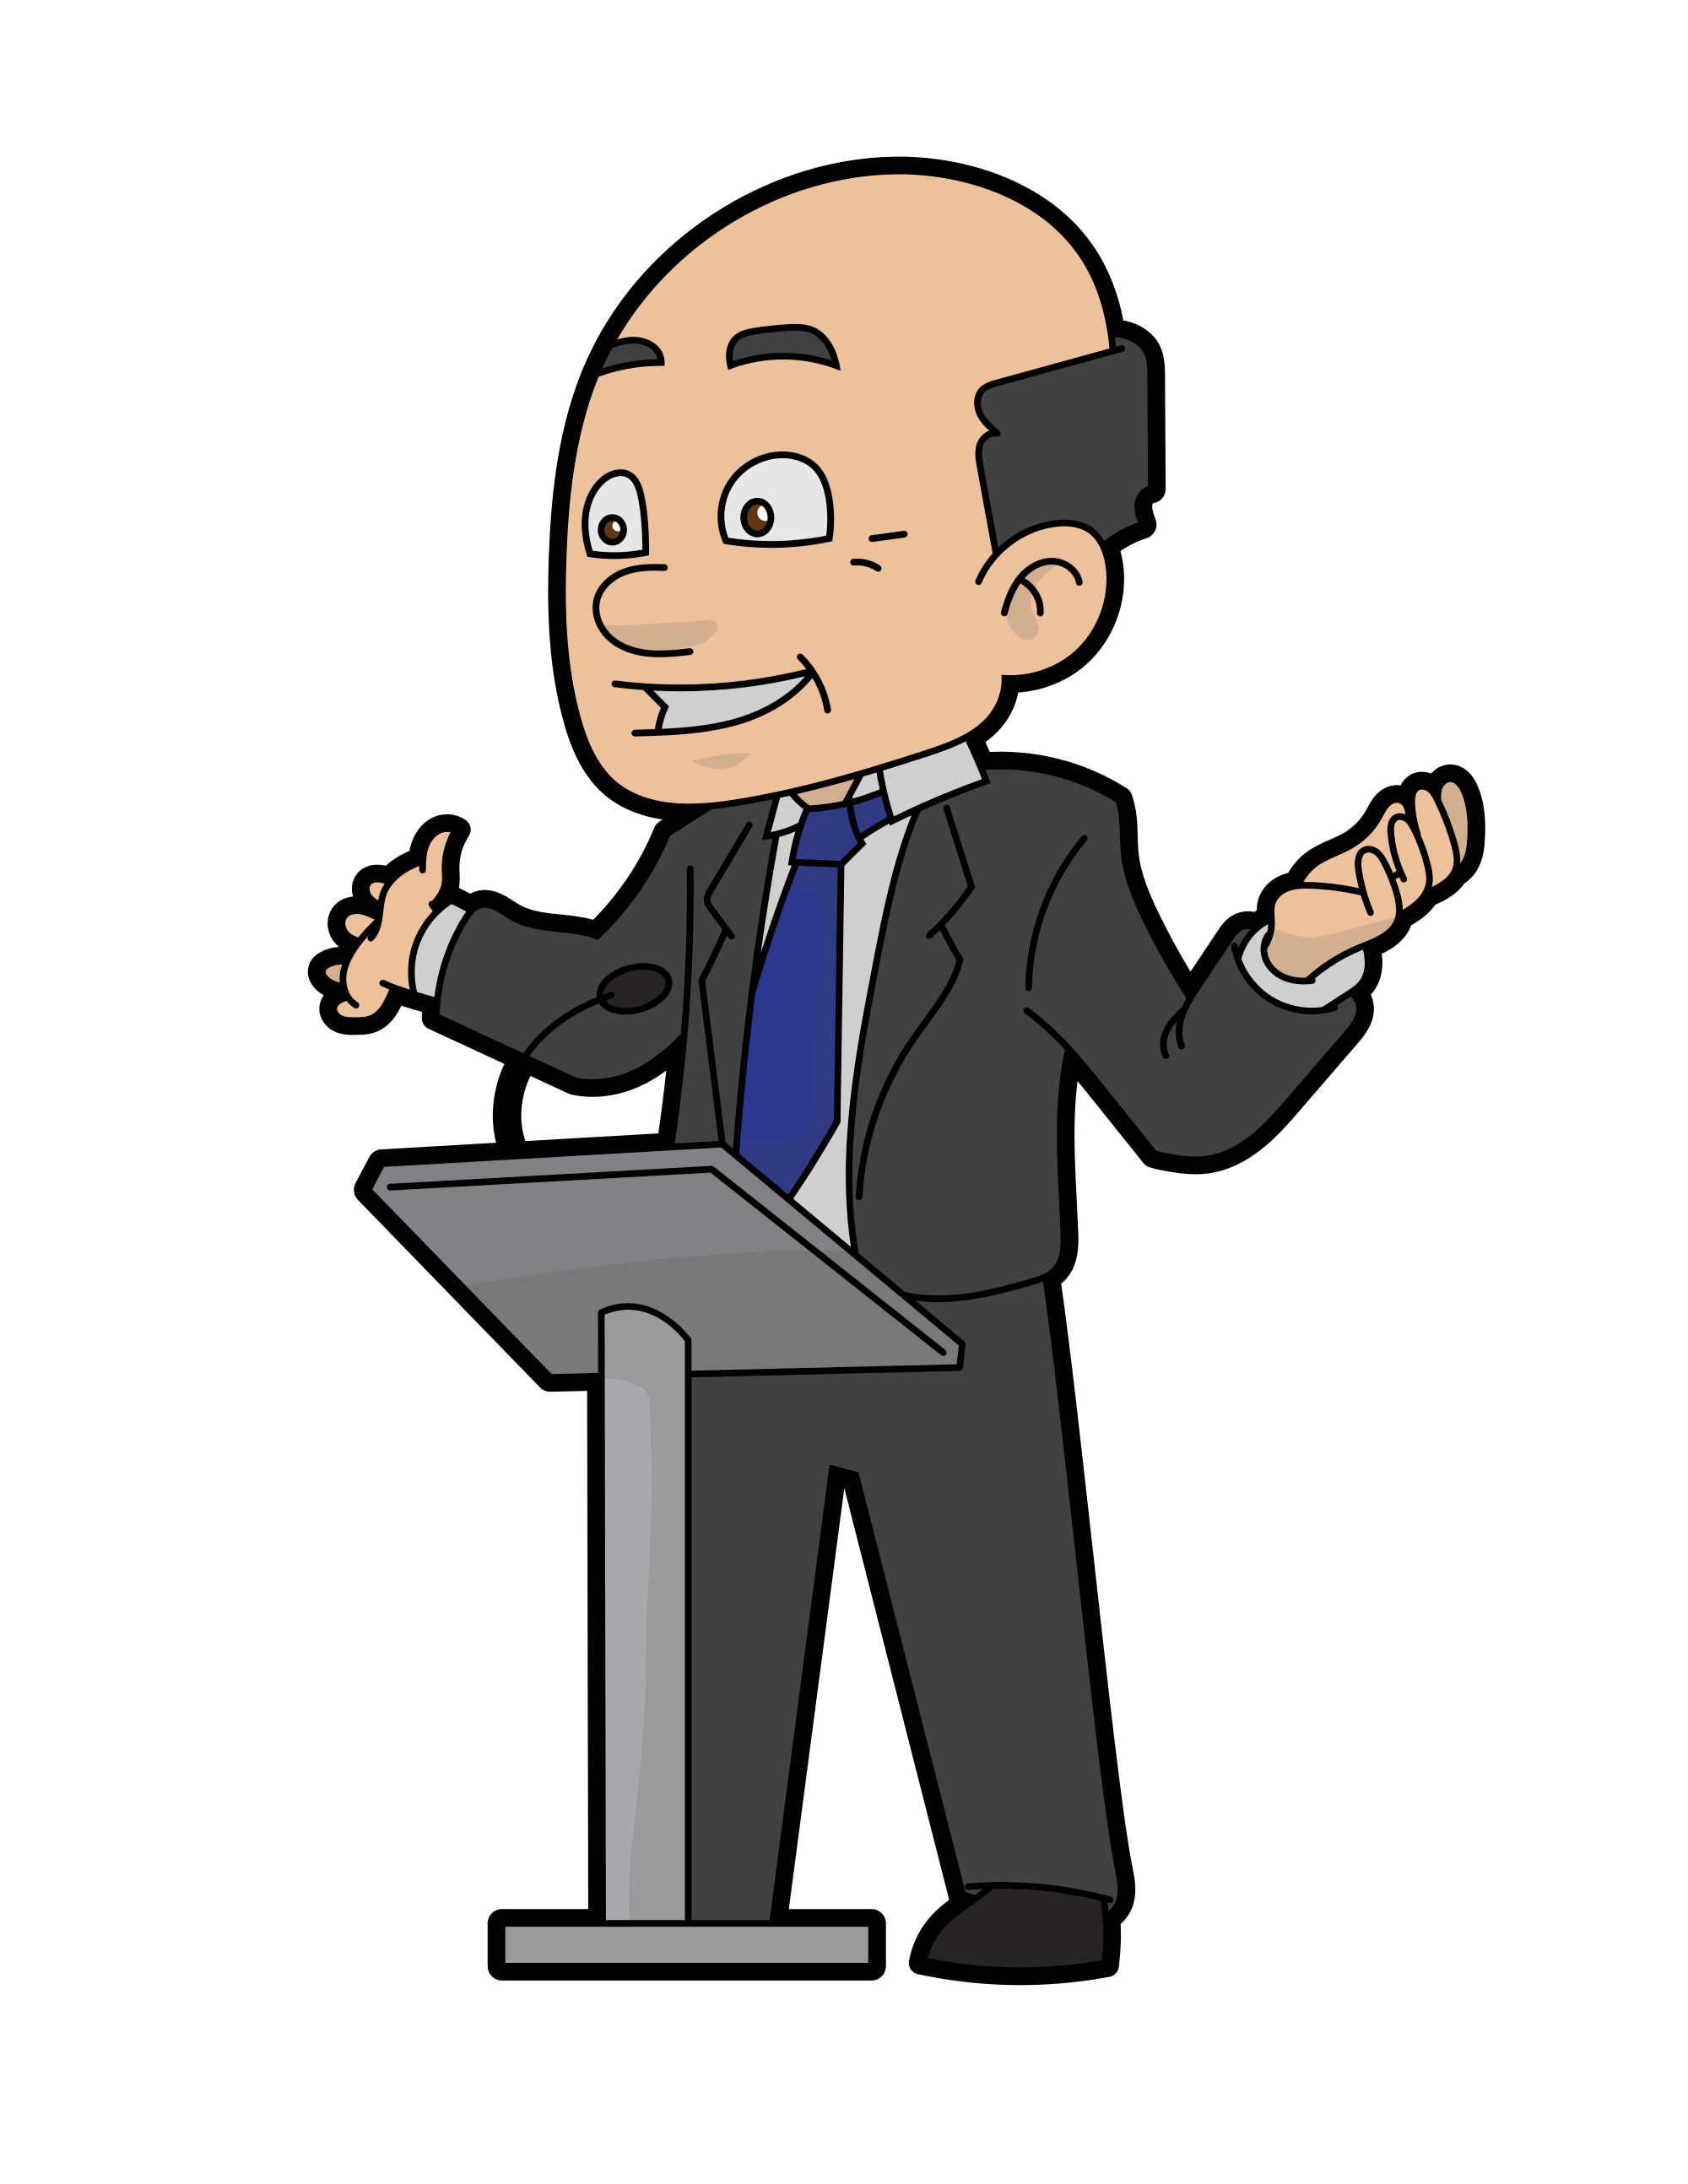 Confident speaker frames illustrations. Politics clipart speech delivery